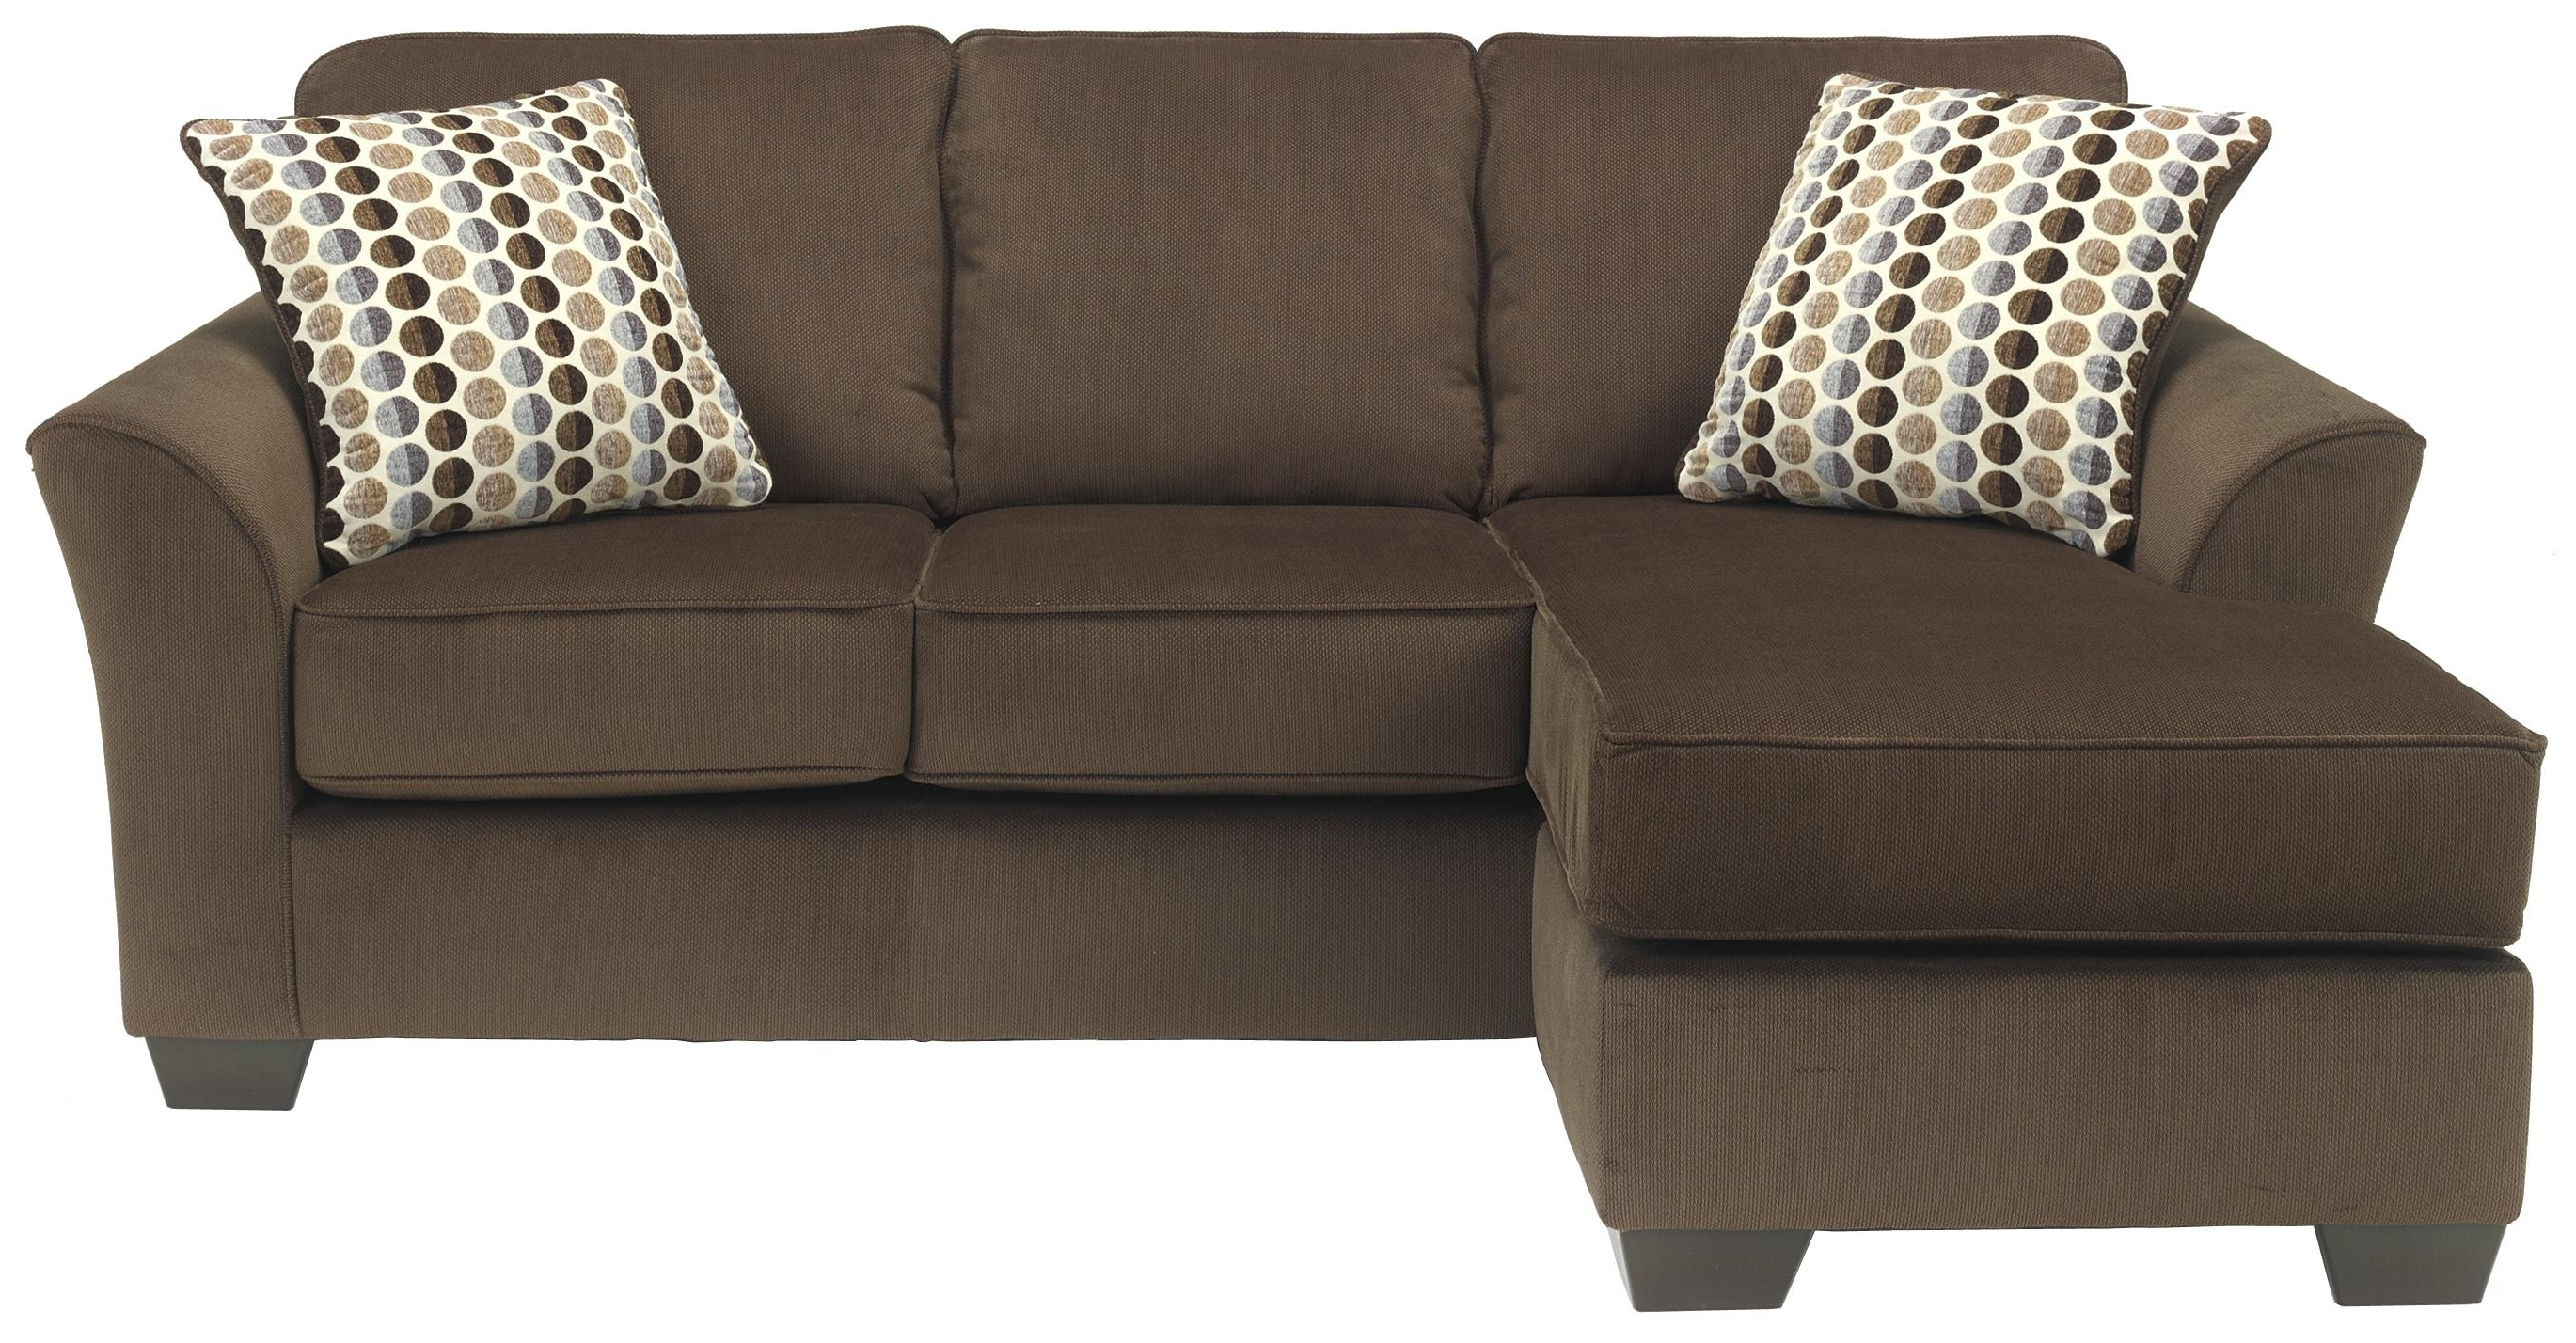 Most Recent Ashley Furniture Geordie – Cafe 2350018 Contemporary Sofa Chaise Regarding Ashley Sofa Chaises (View 14 of 15)